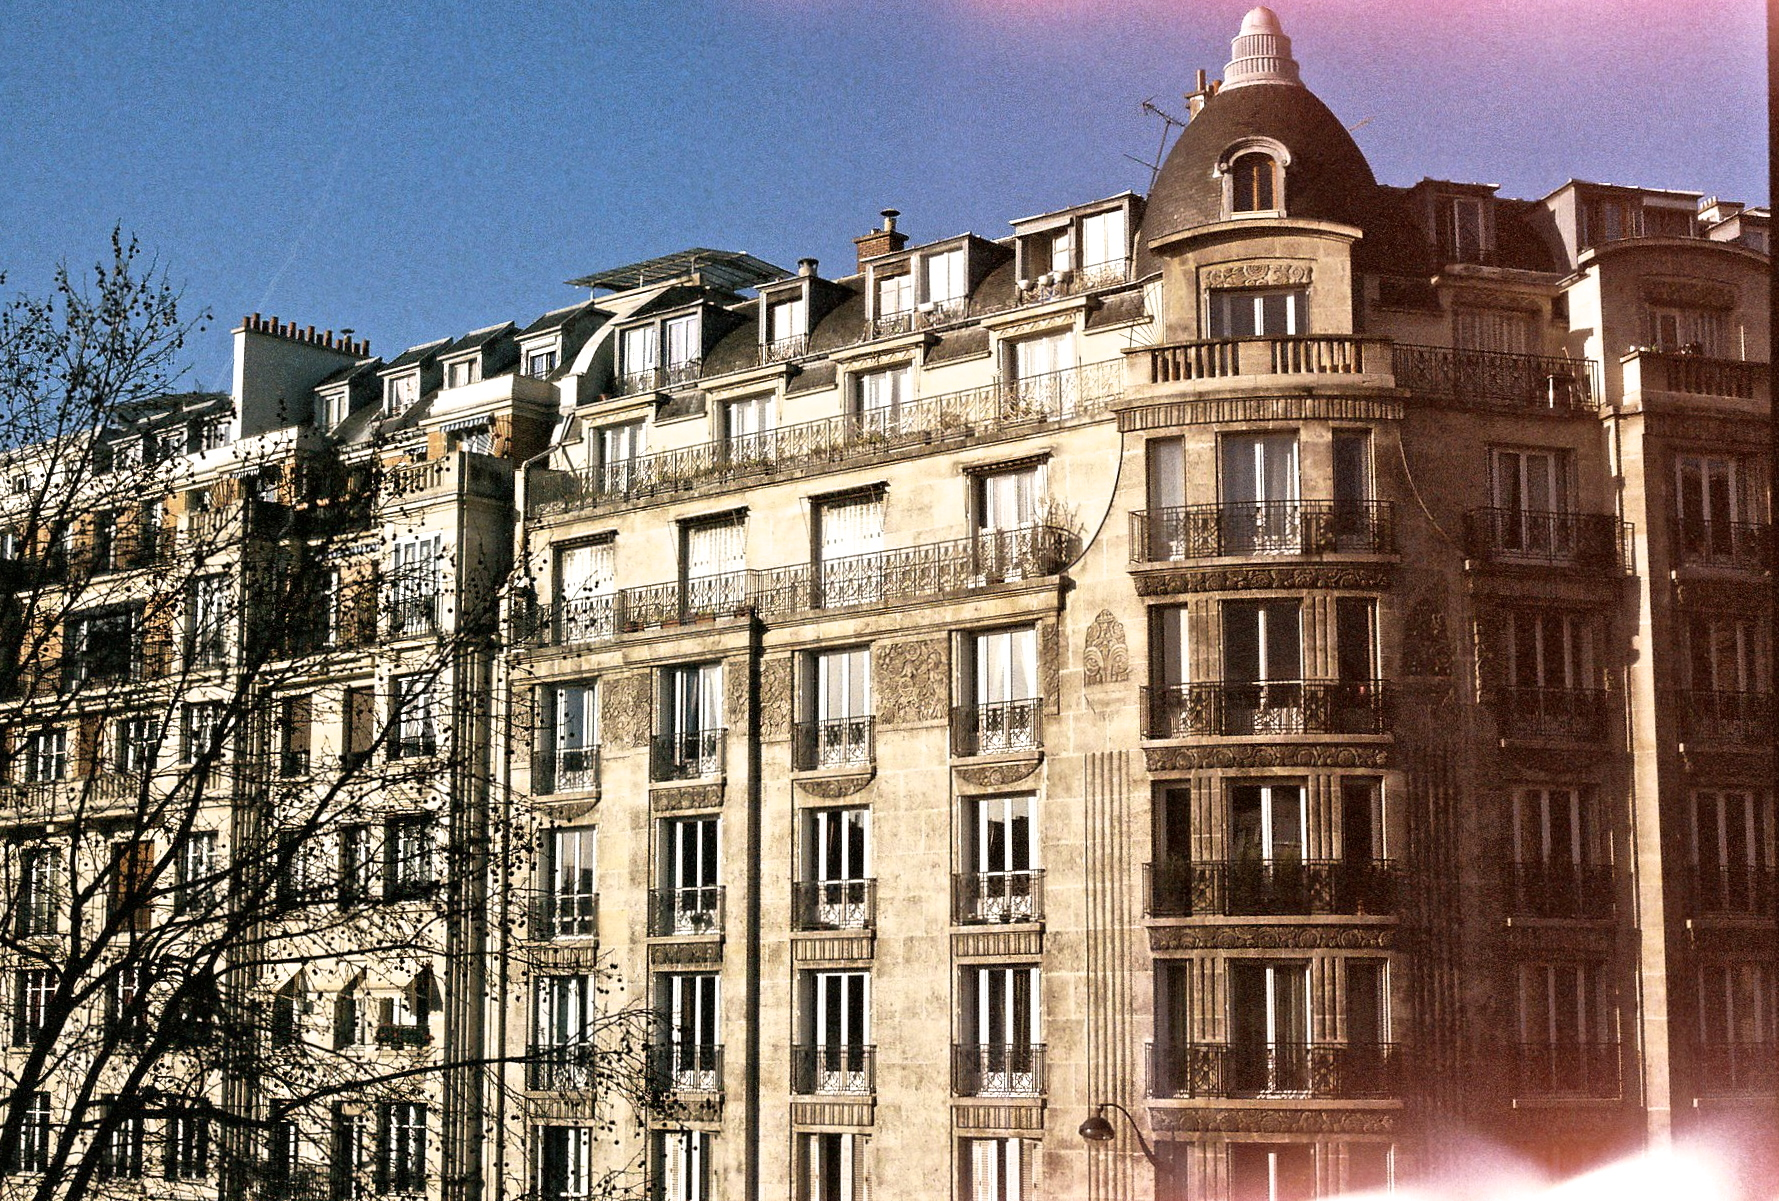 My first apartment in Paris overlooking Boulevard Gouvion St. Cyr